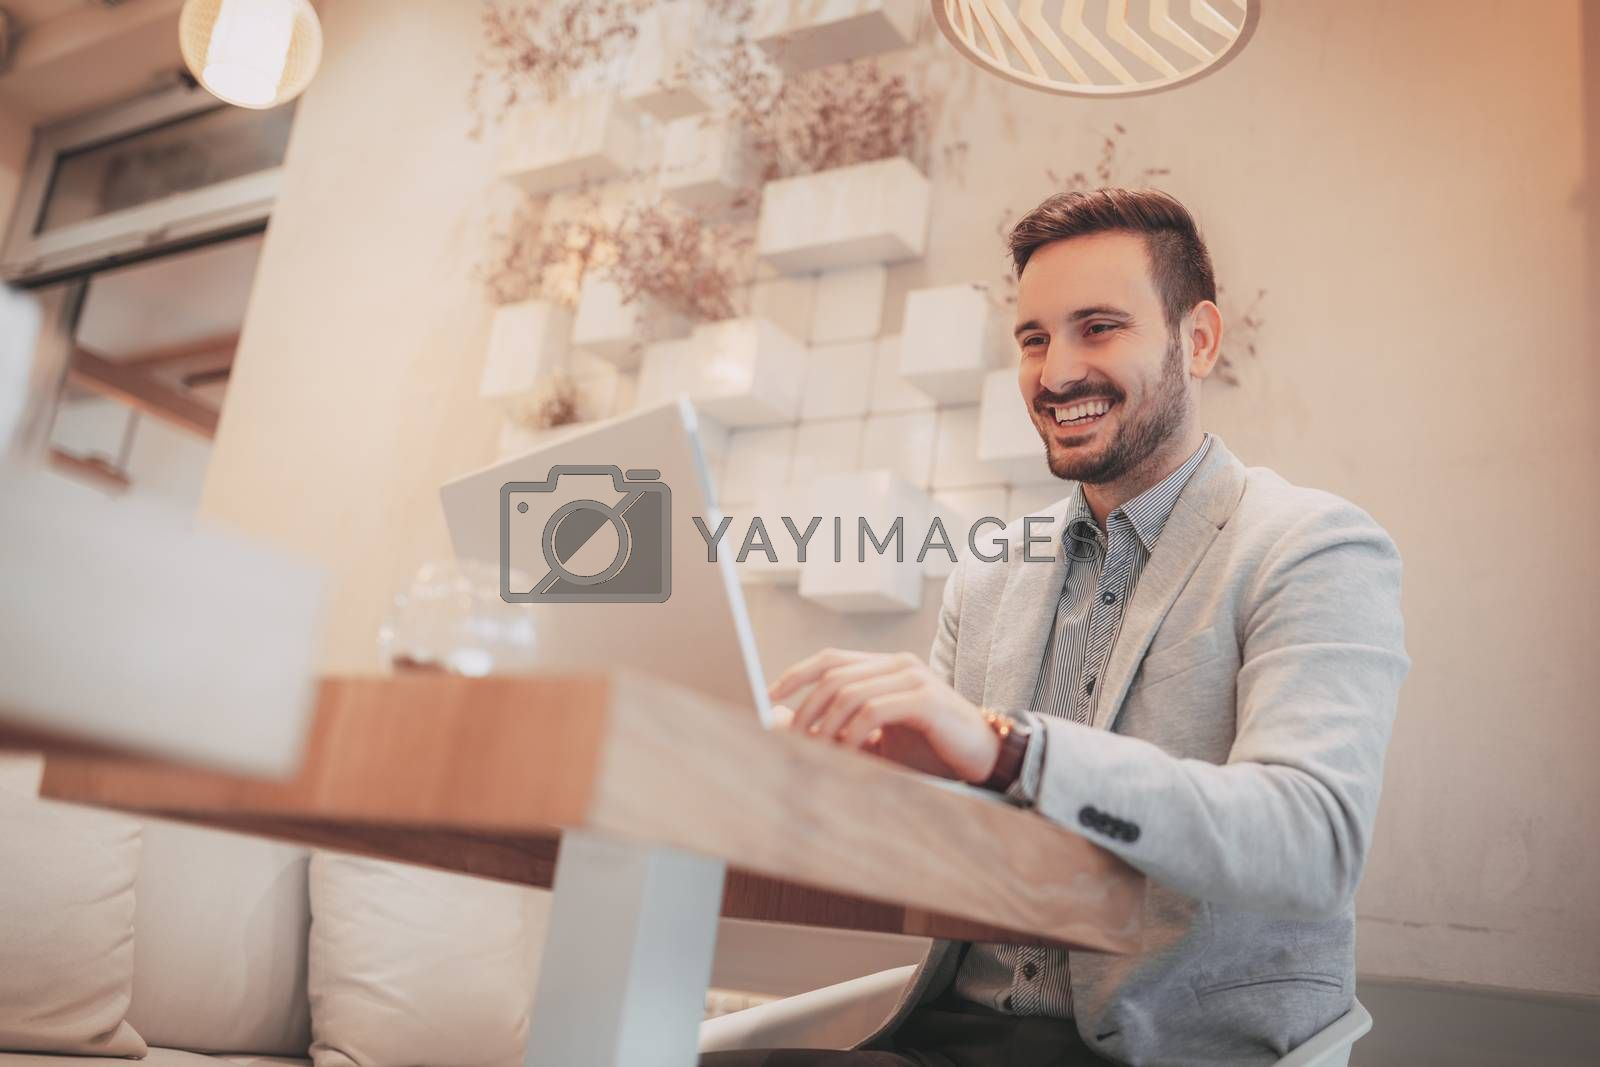 Young smiling businessman on a break in a cafe. He is working at tablet and using smart phone.